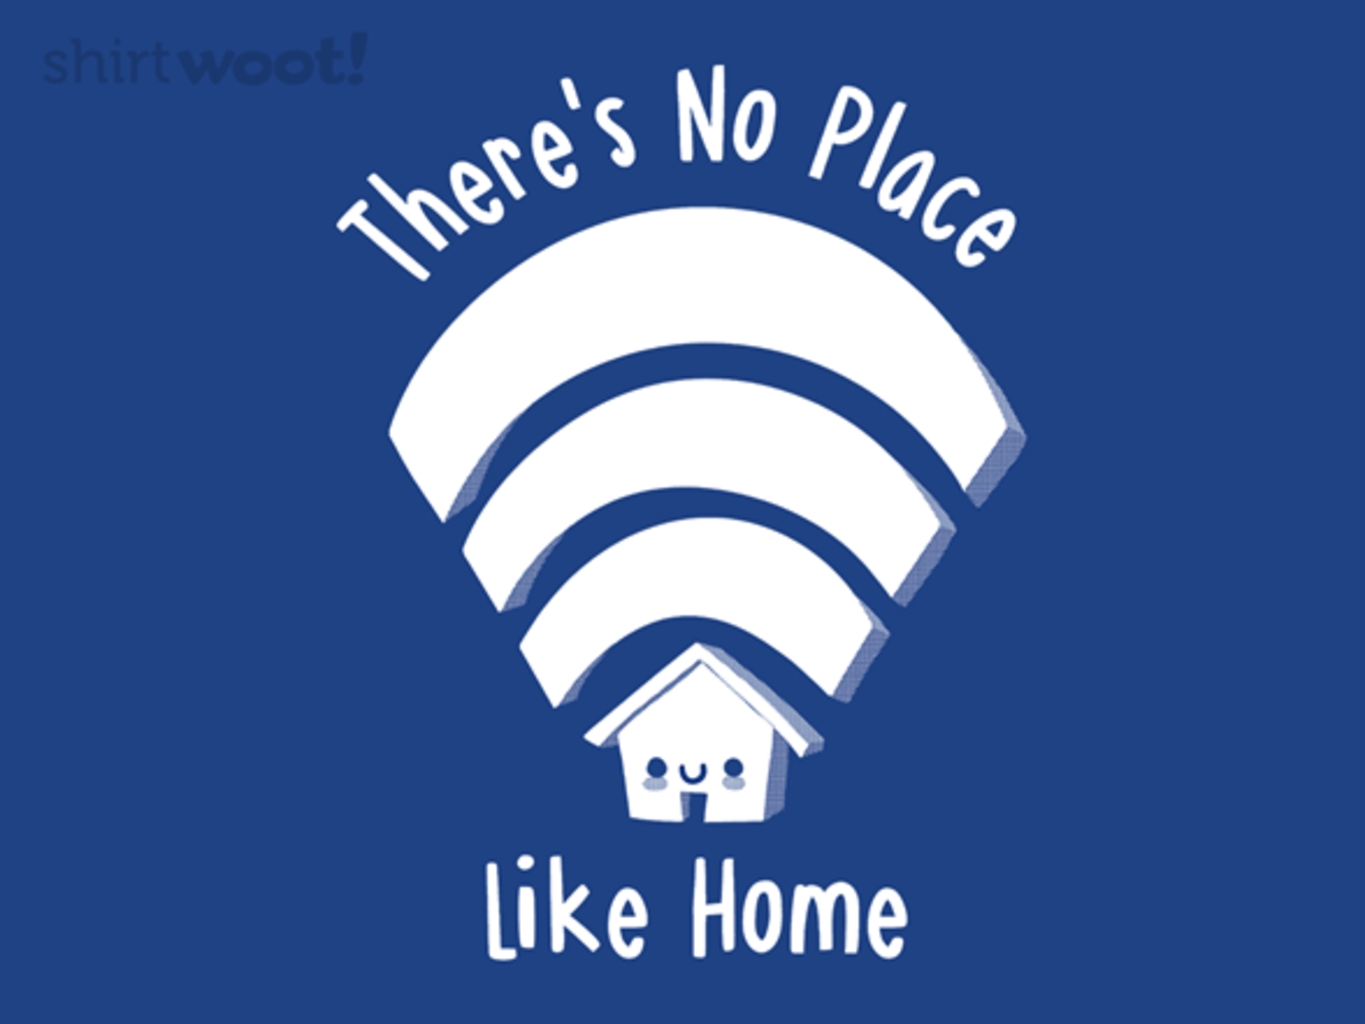 Woot!: Home Wi-Fi